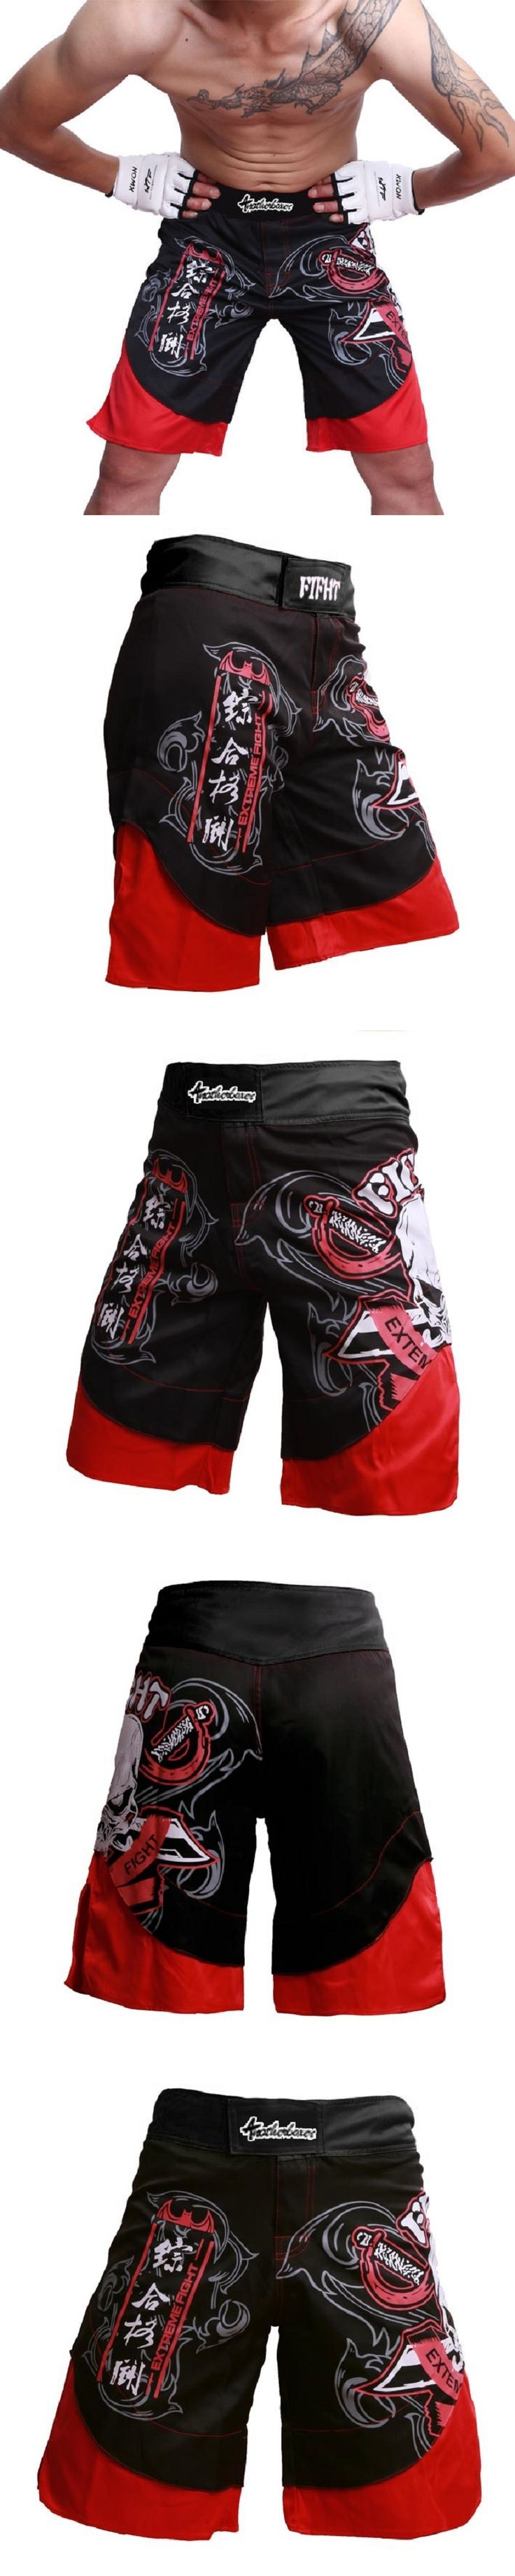 New Man's Combat Pants Mma Boxing Trunks Sport Clothes Muay Thai Multiple Style Men's Mma Clothing Wholesale Pirate hot sell